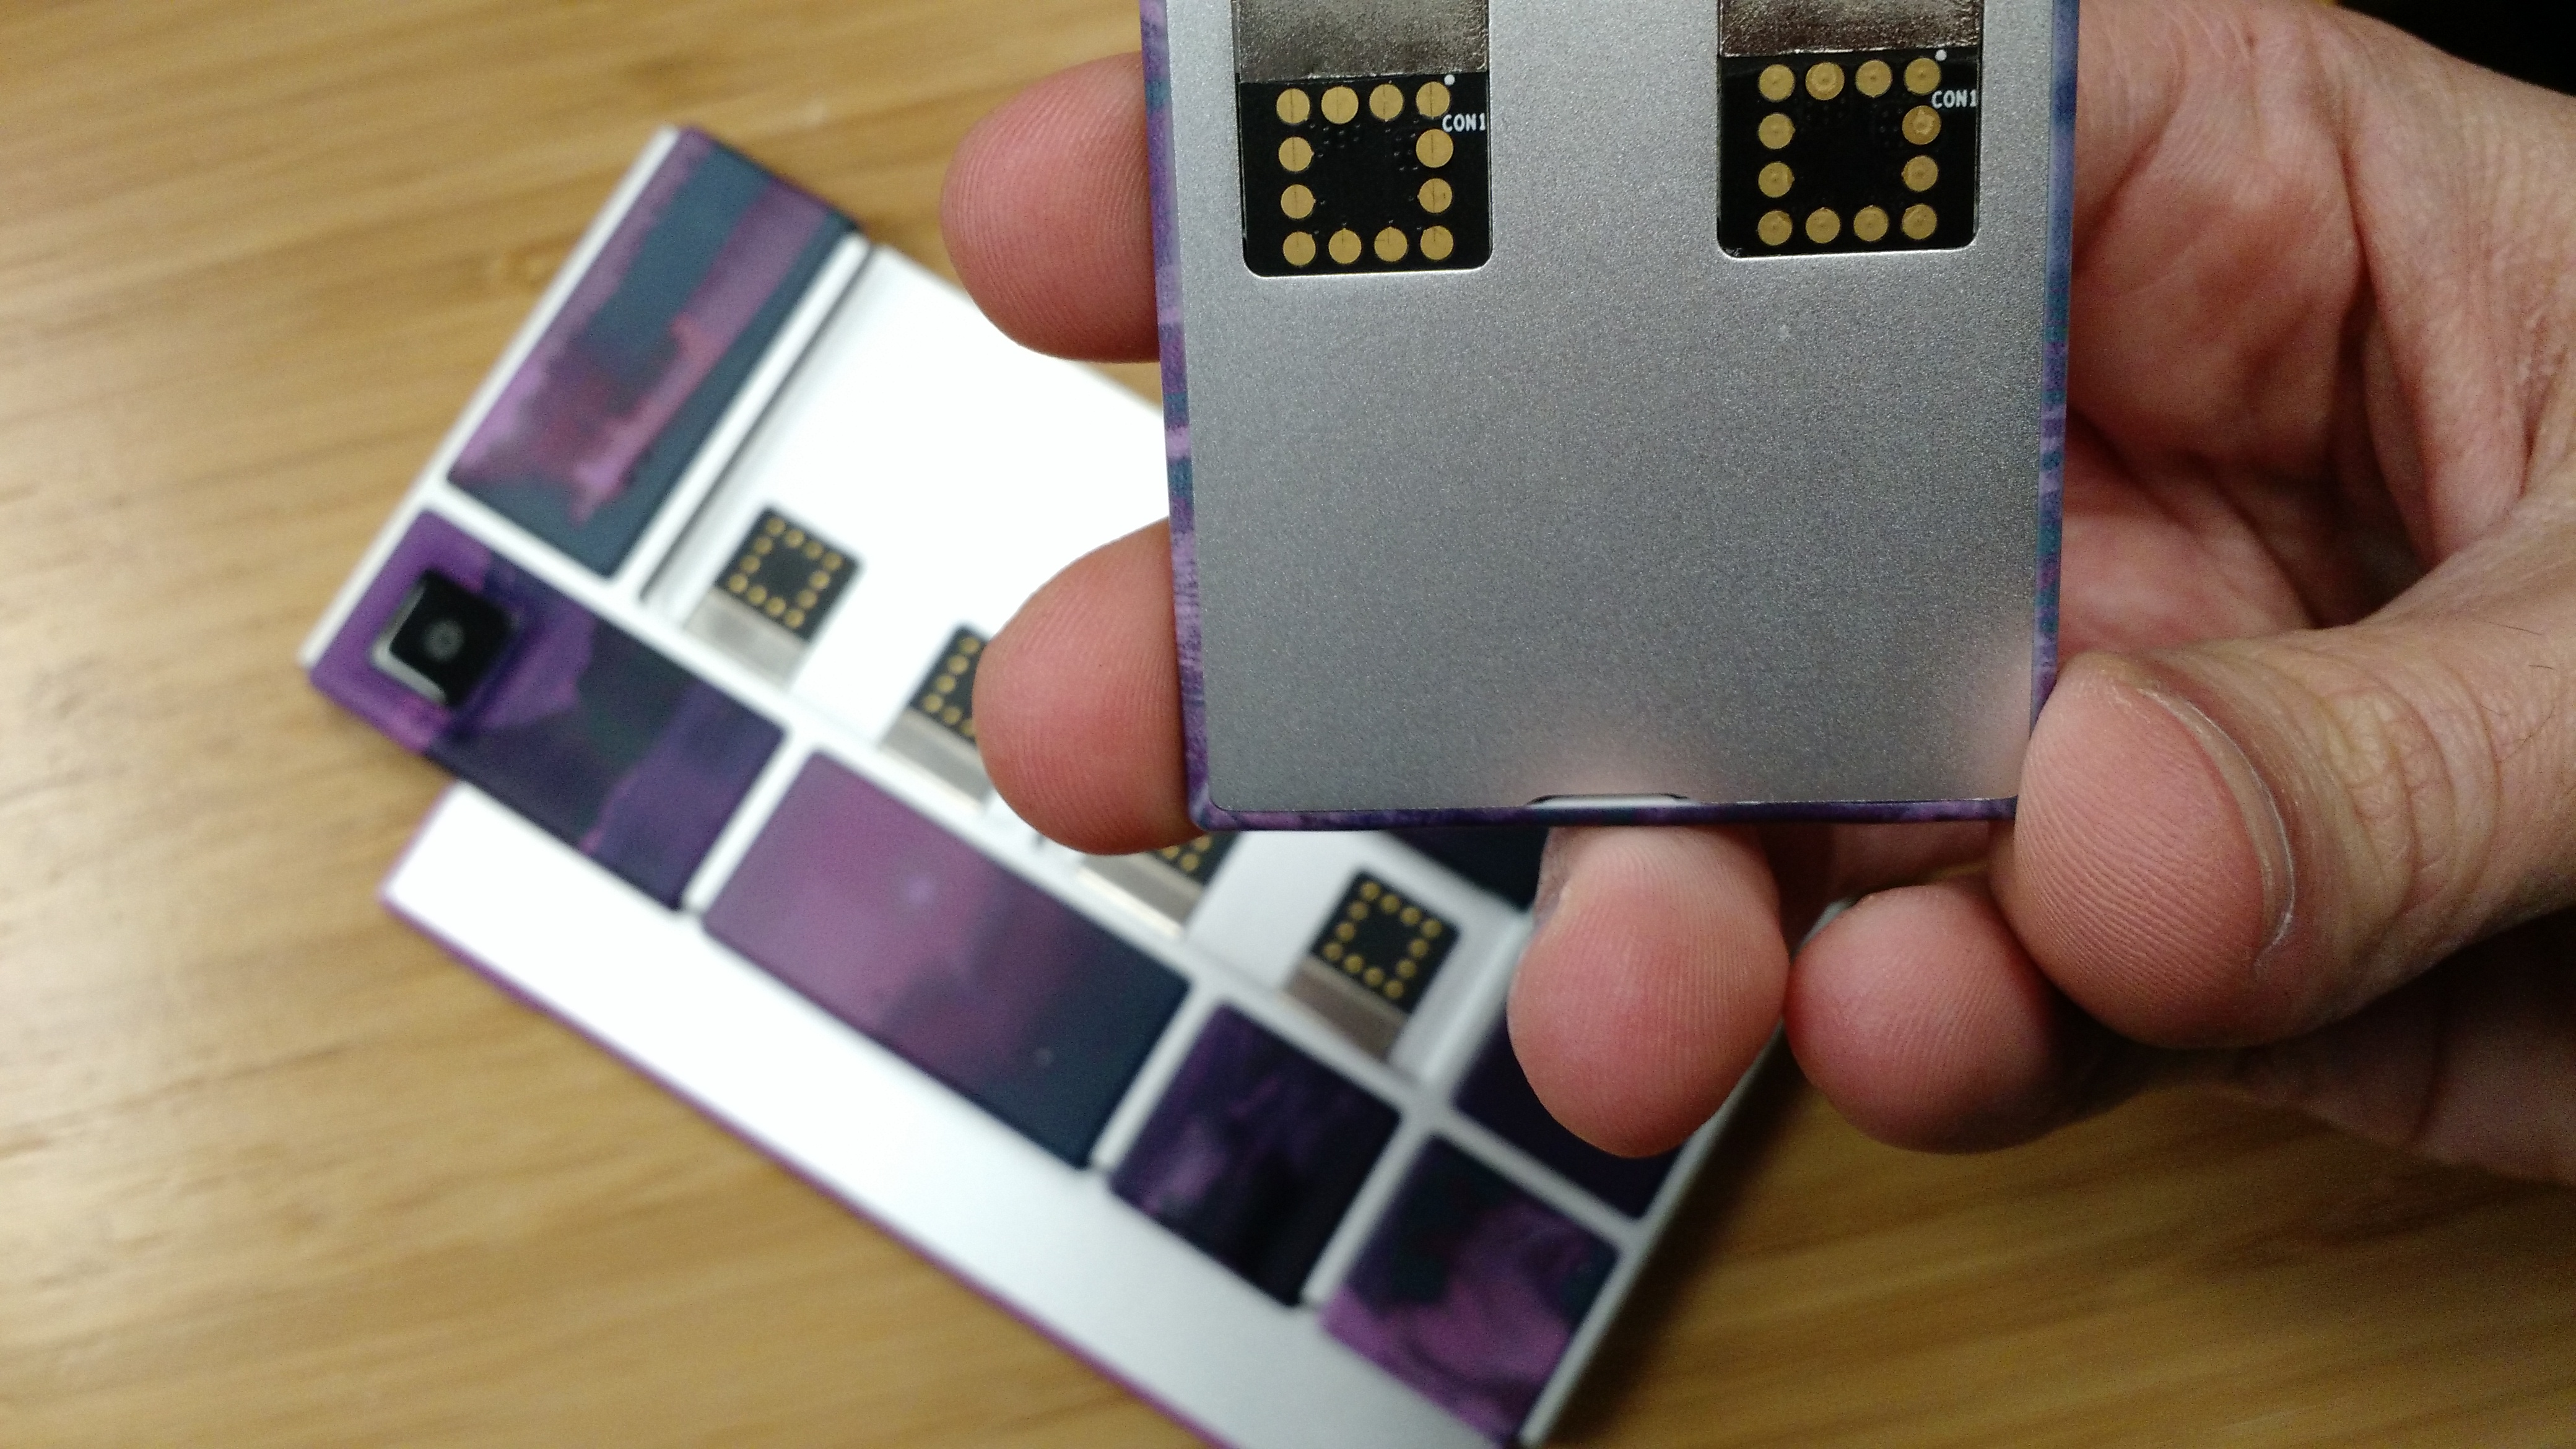 A Google Project Ara smartphone prototype in real life.